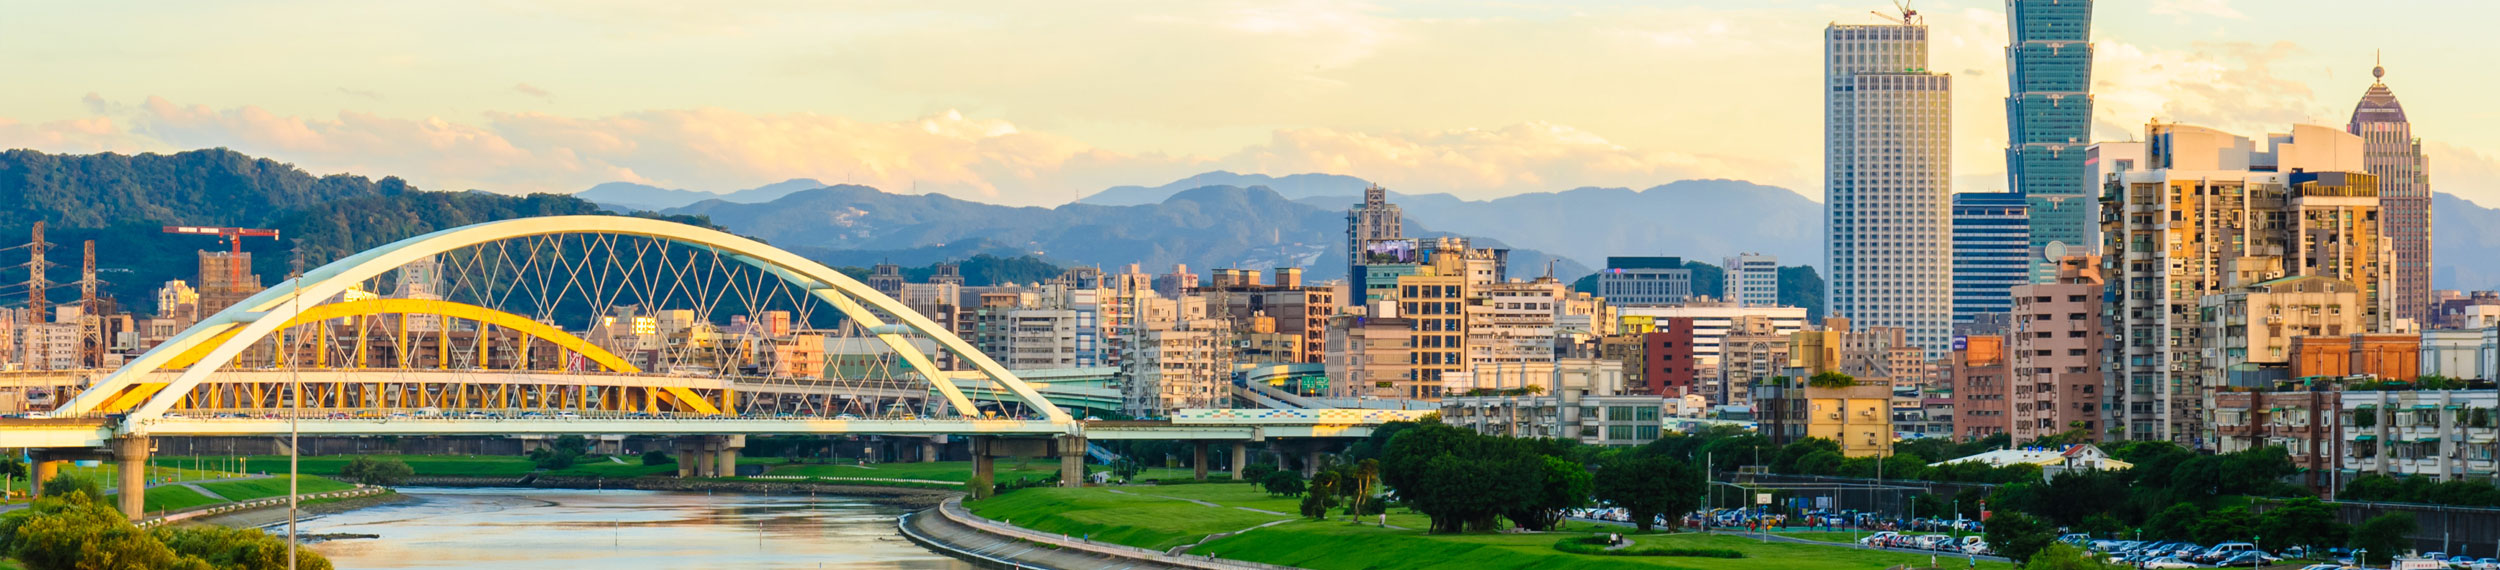 Landscape shot of a bridge over the Tamsui River and city buildings in Taipei, Taiwan